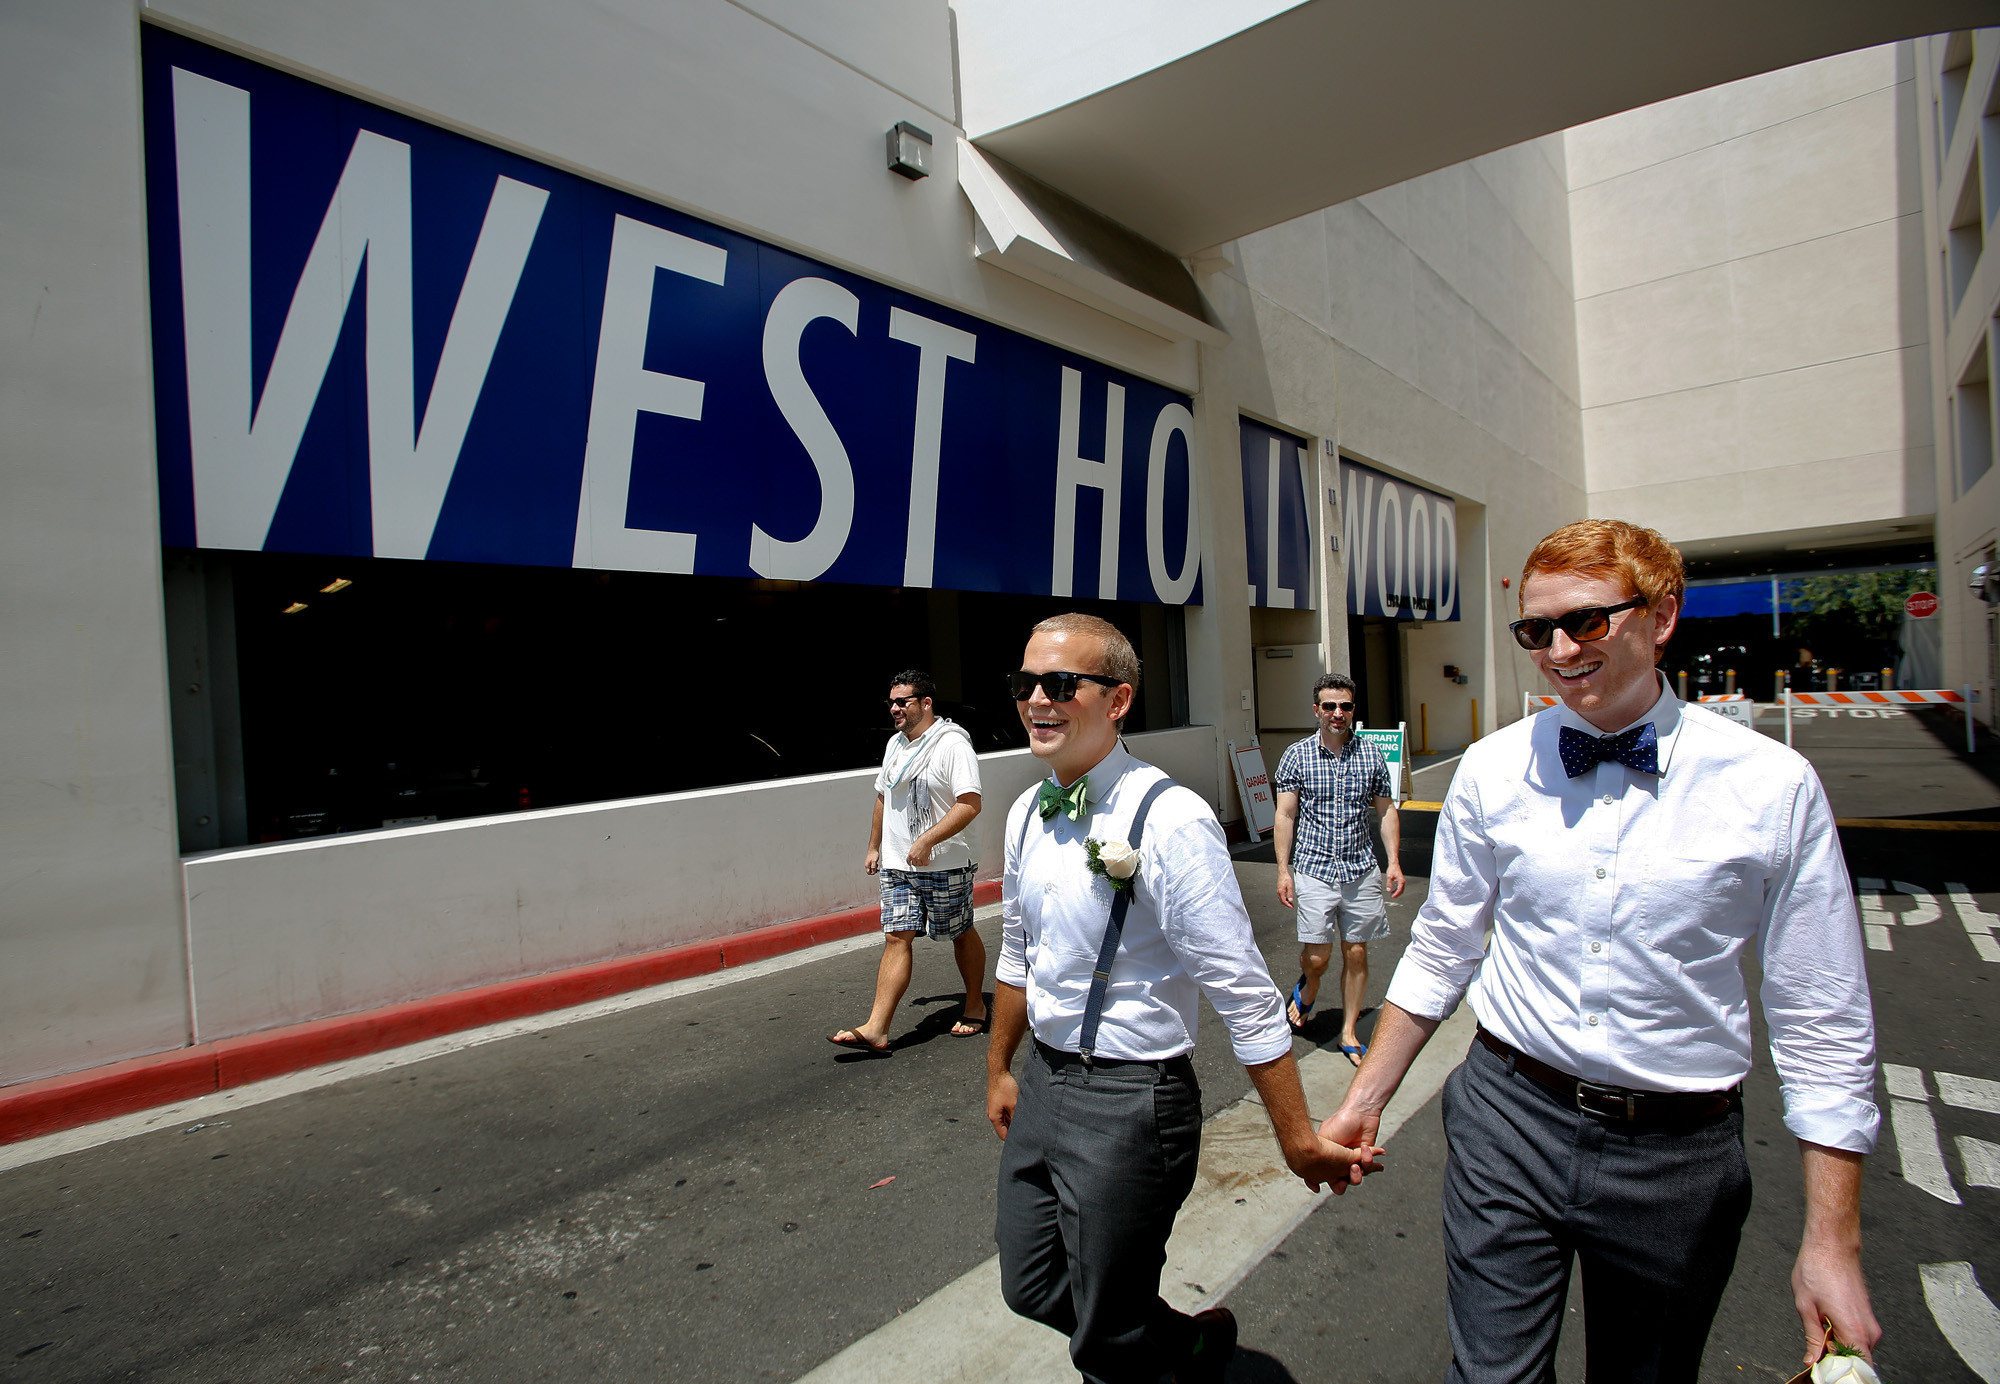 west hollywood gay personals The largest selection of gay personals on the web with thousands of members it's even easier to hook up with girls around the corner or around the globe.